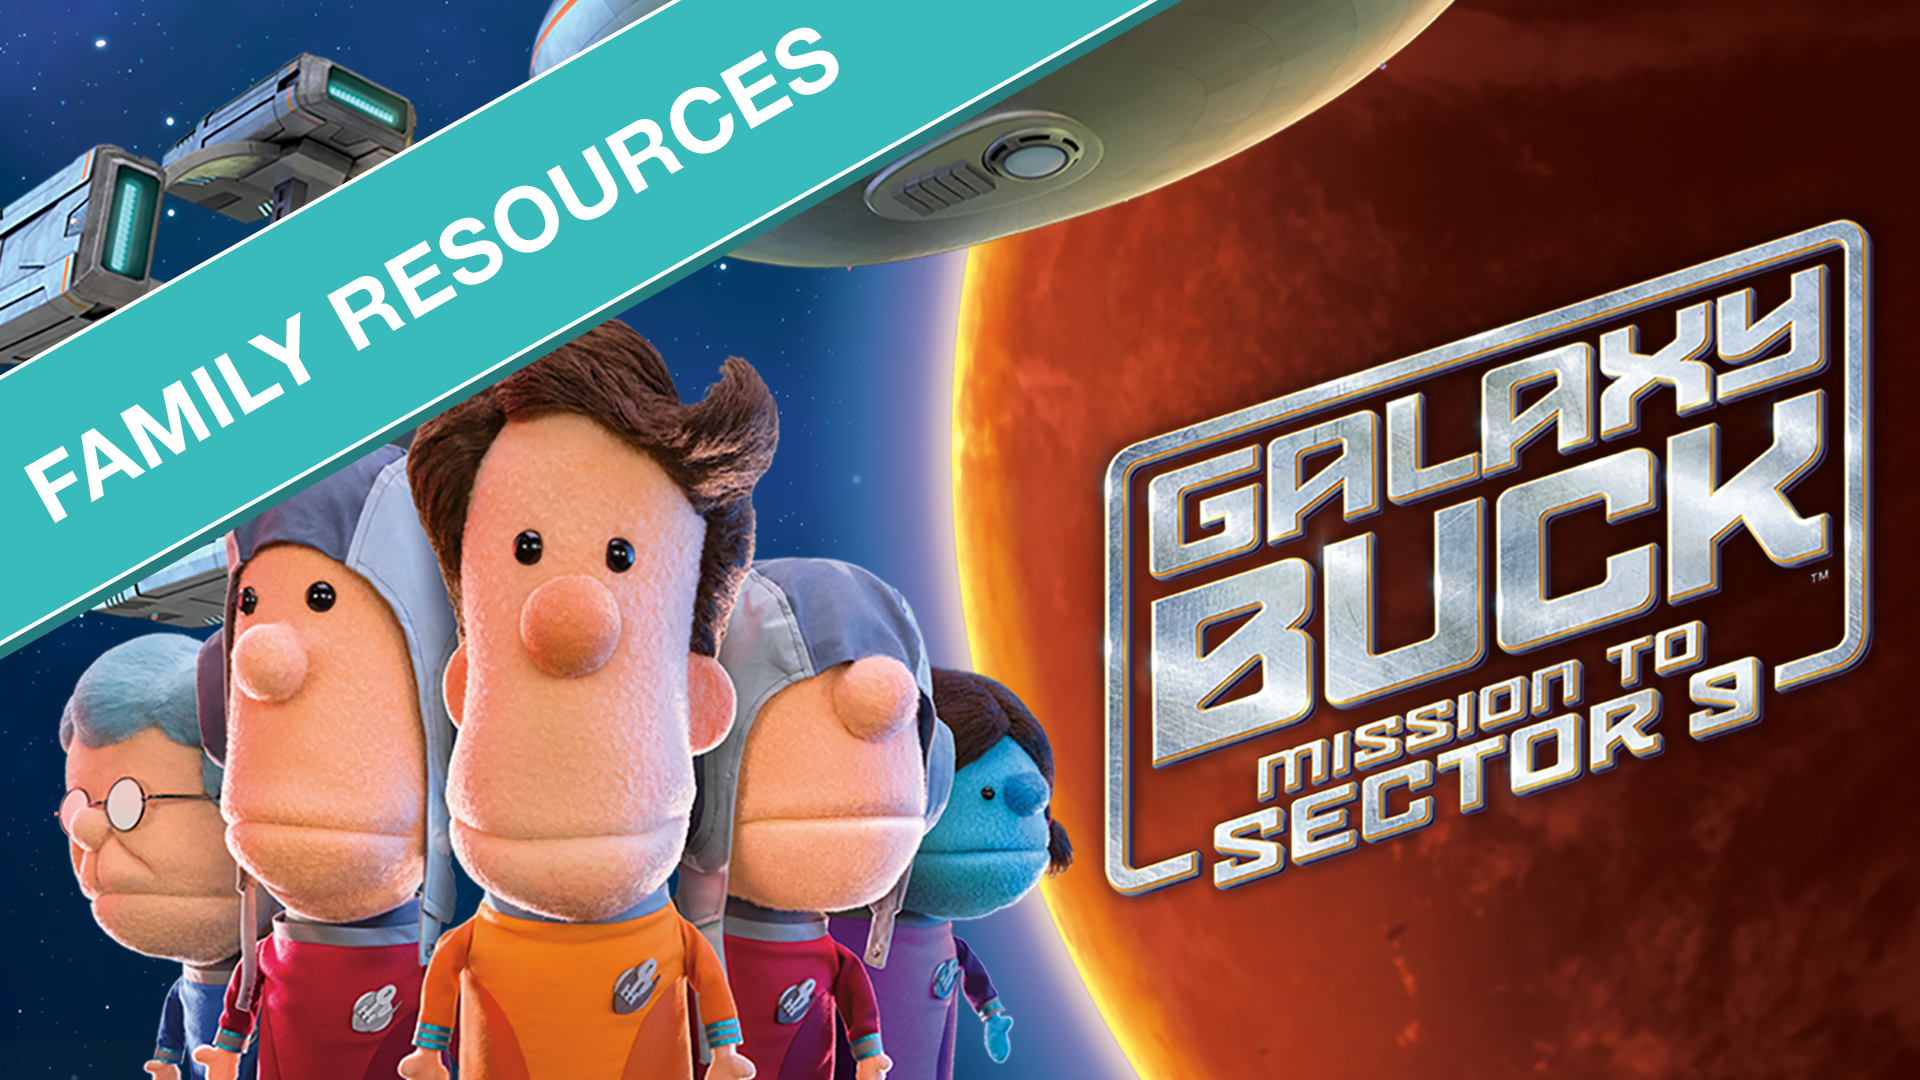 Galaxy buck family resources